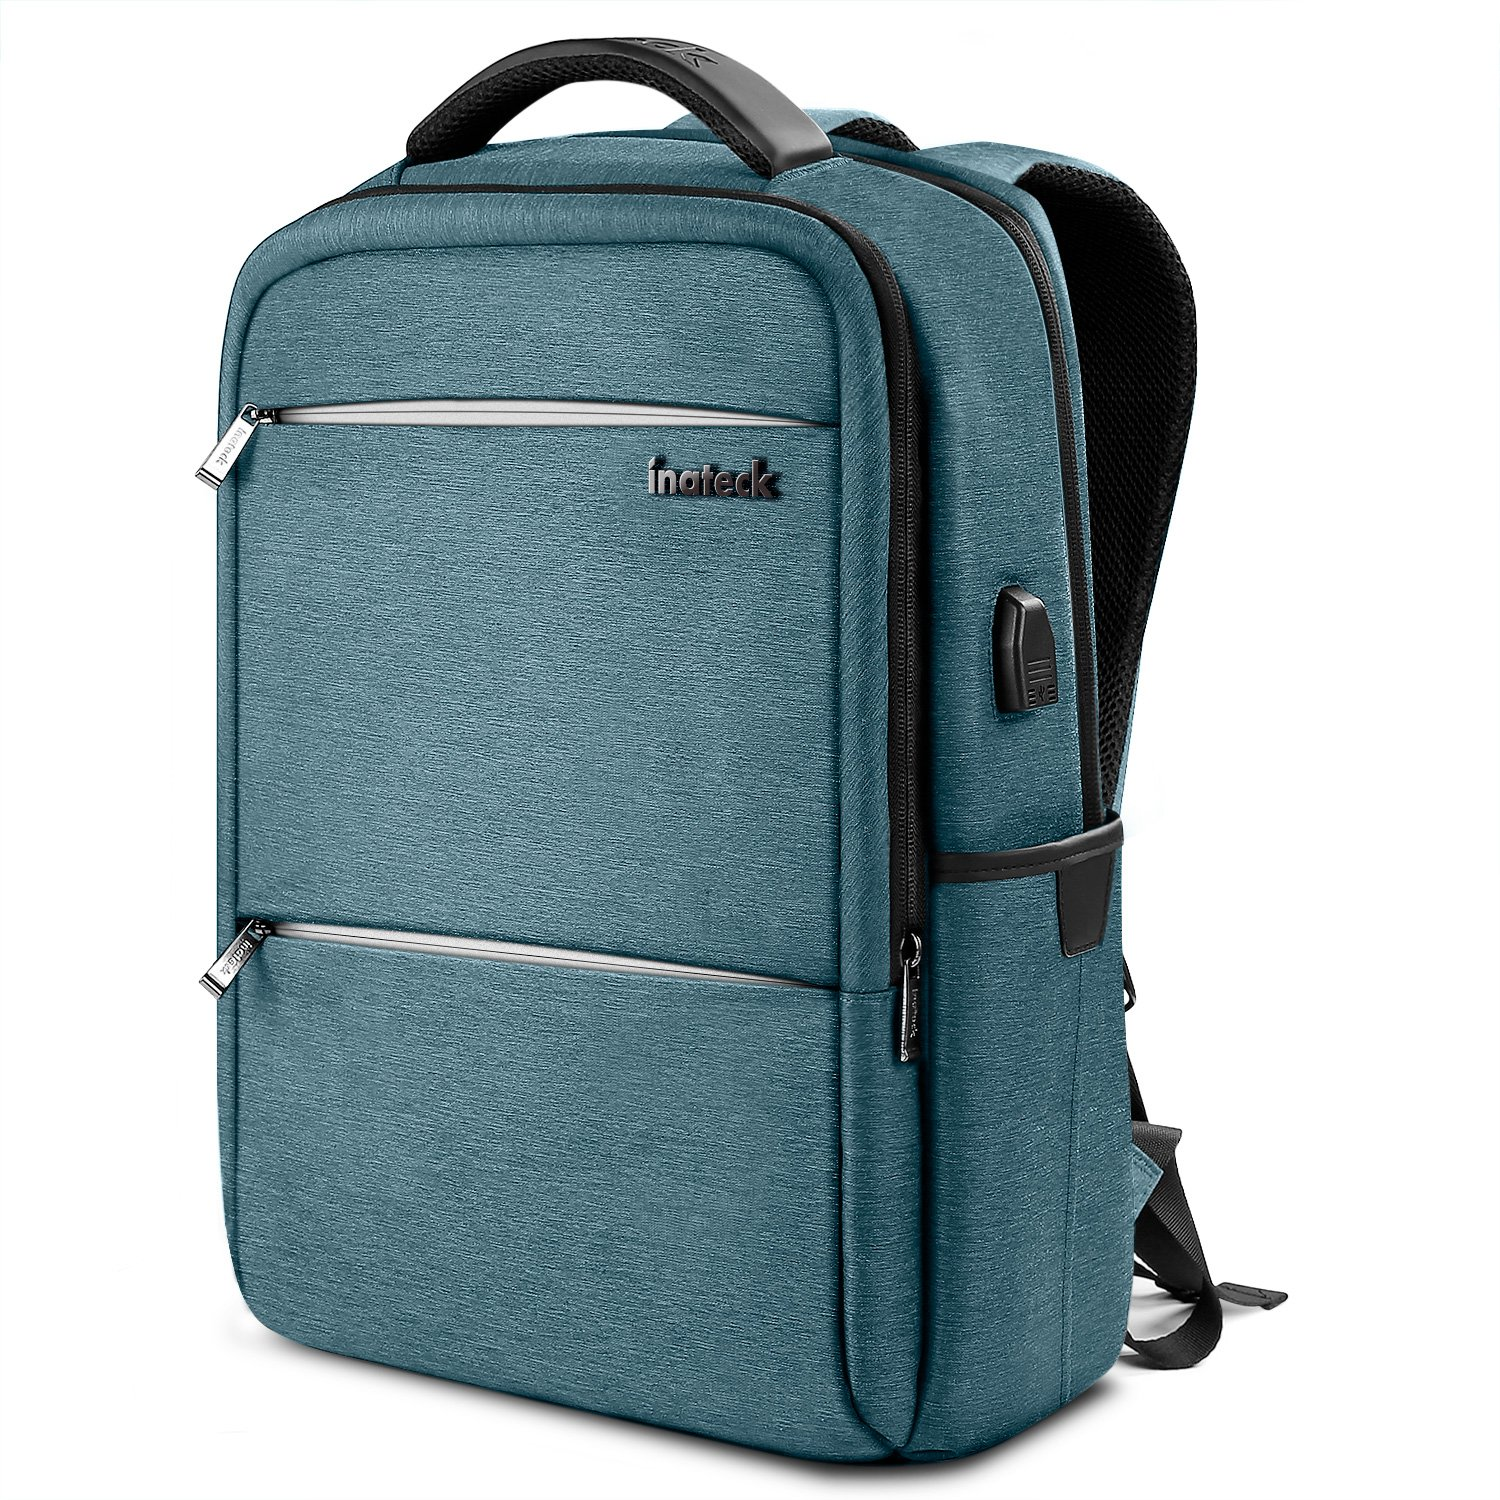 Inateck Anti-Theft School Business Travel Laptop Backpack Bag with USB Charging Port, Fits Up to 15.6'' Laptops, Rucksack with Waterproof Rain Cover and Luggage Belt - Blue